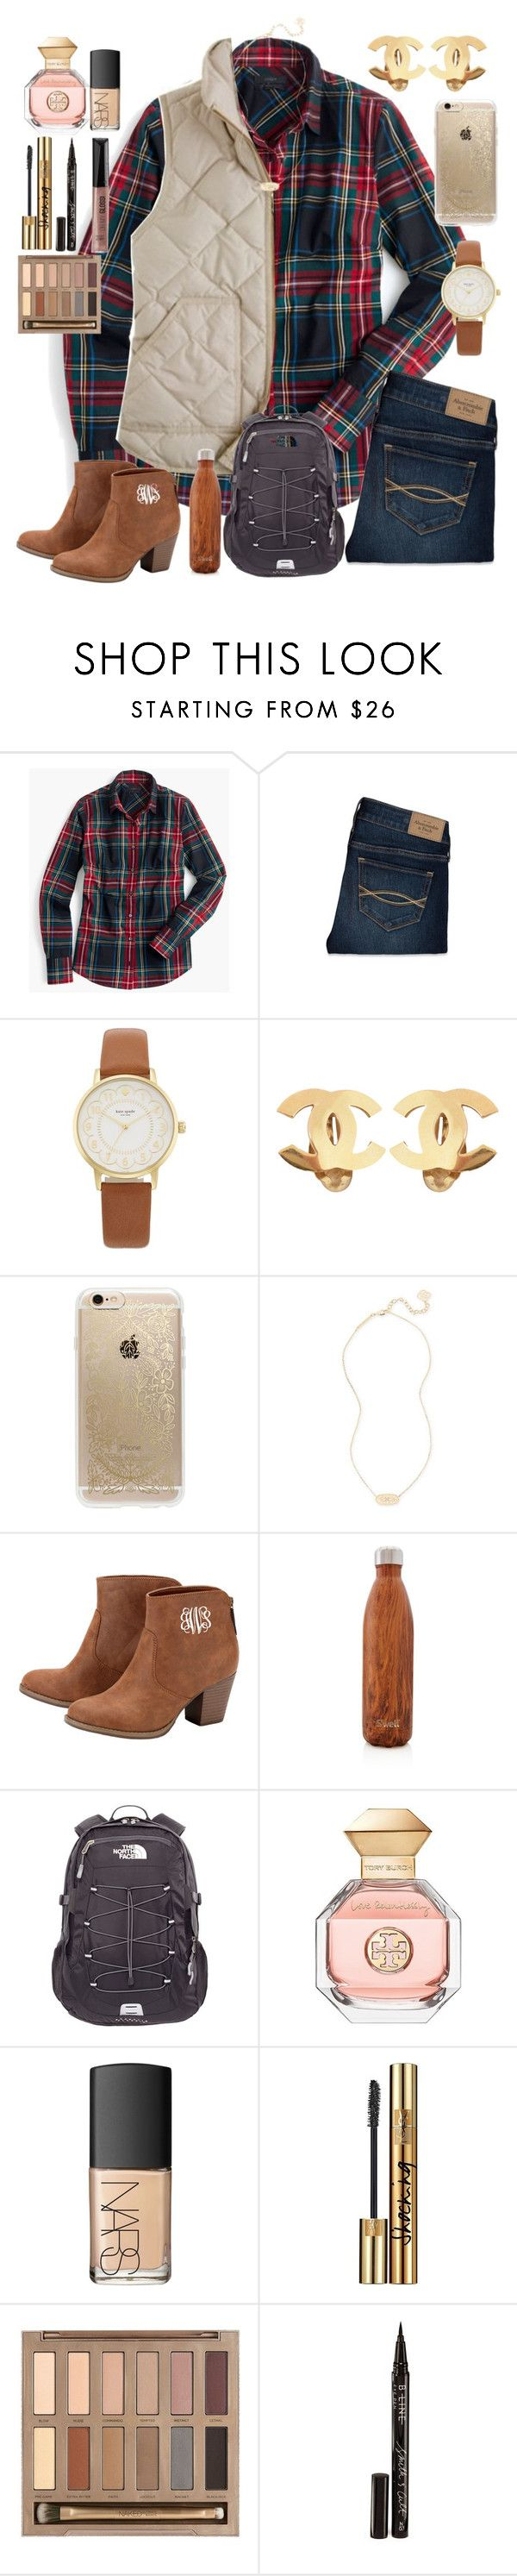 """1/24/17"" by ctrygrl1999 ❤ liked on Polyvore featuring J.Crew, Abercrombie & Fitch, Kate Spade, Chanel, Rifle Paper Co, Kendra Scott, S'well, The North Face, Tory Burch and NARS Cosmetics"